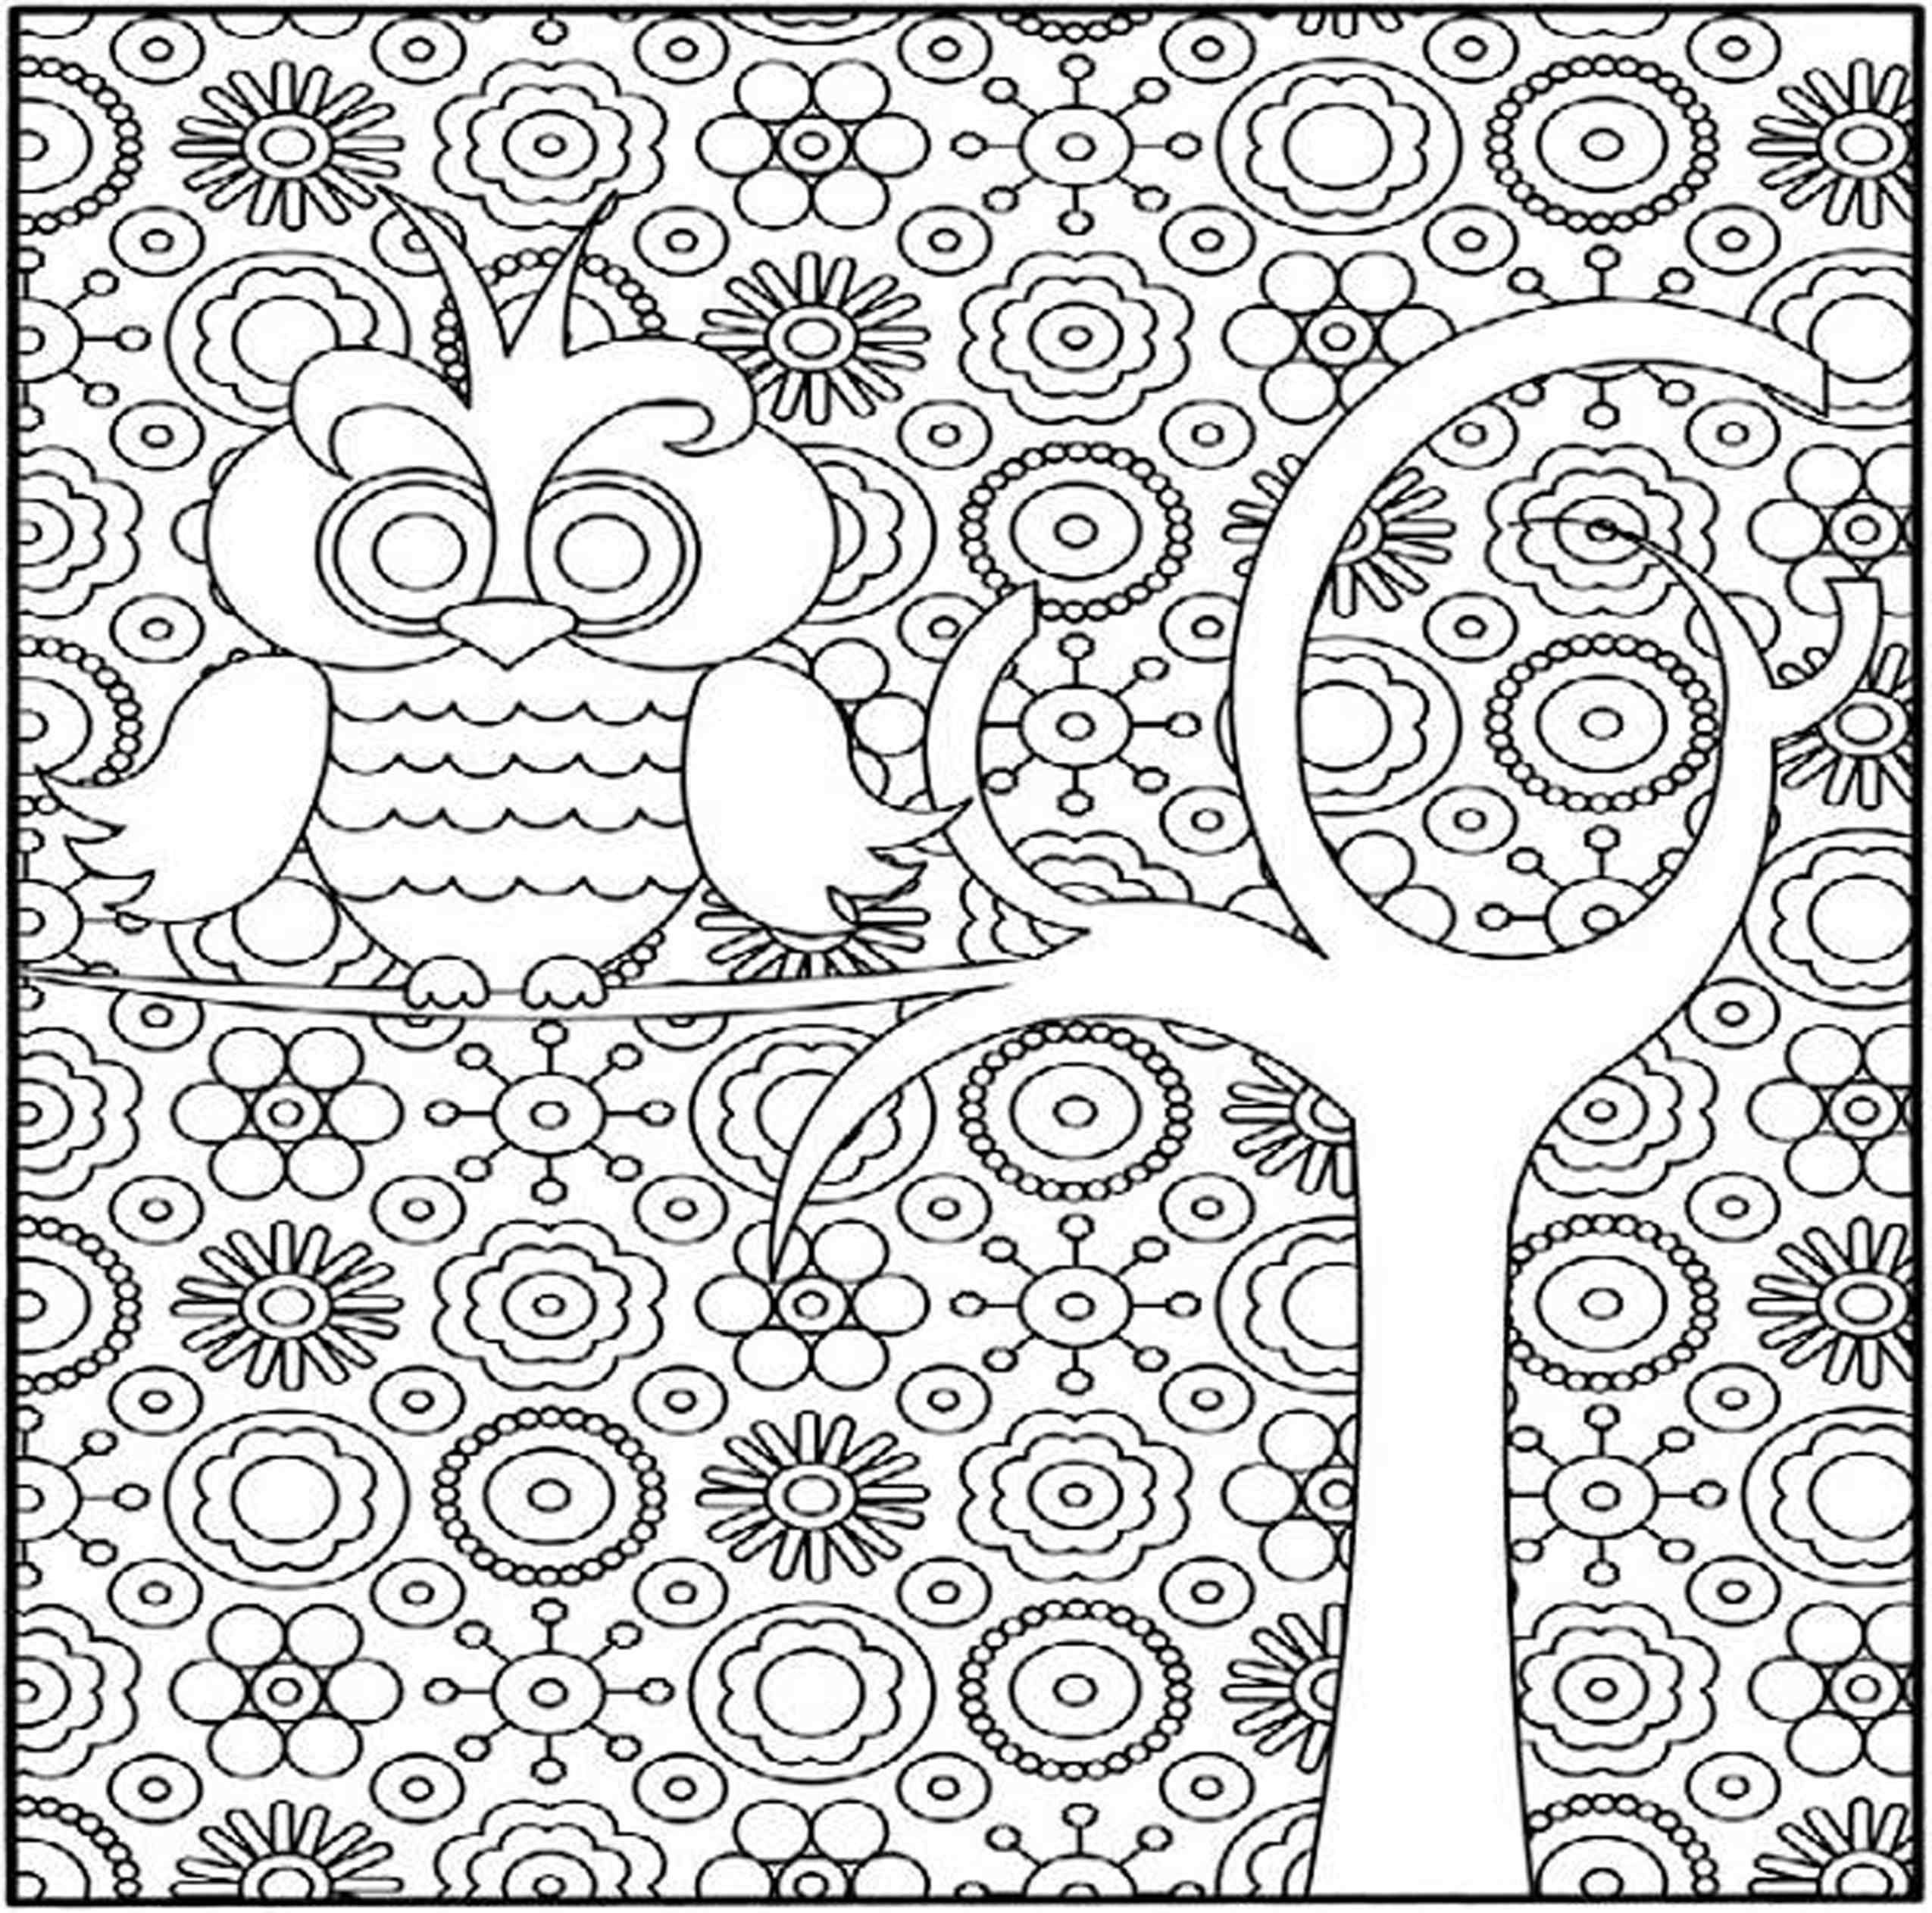 Printable Coloring Sheets For Teenage Girls  Coloring Pages For Teenage Girls Coloring Home